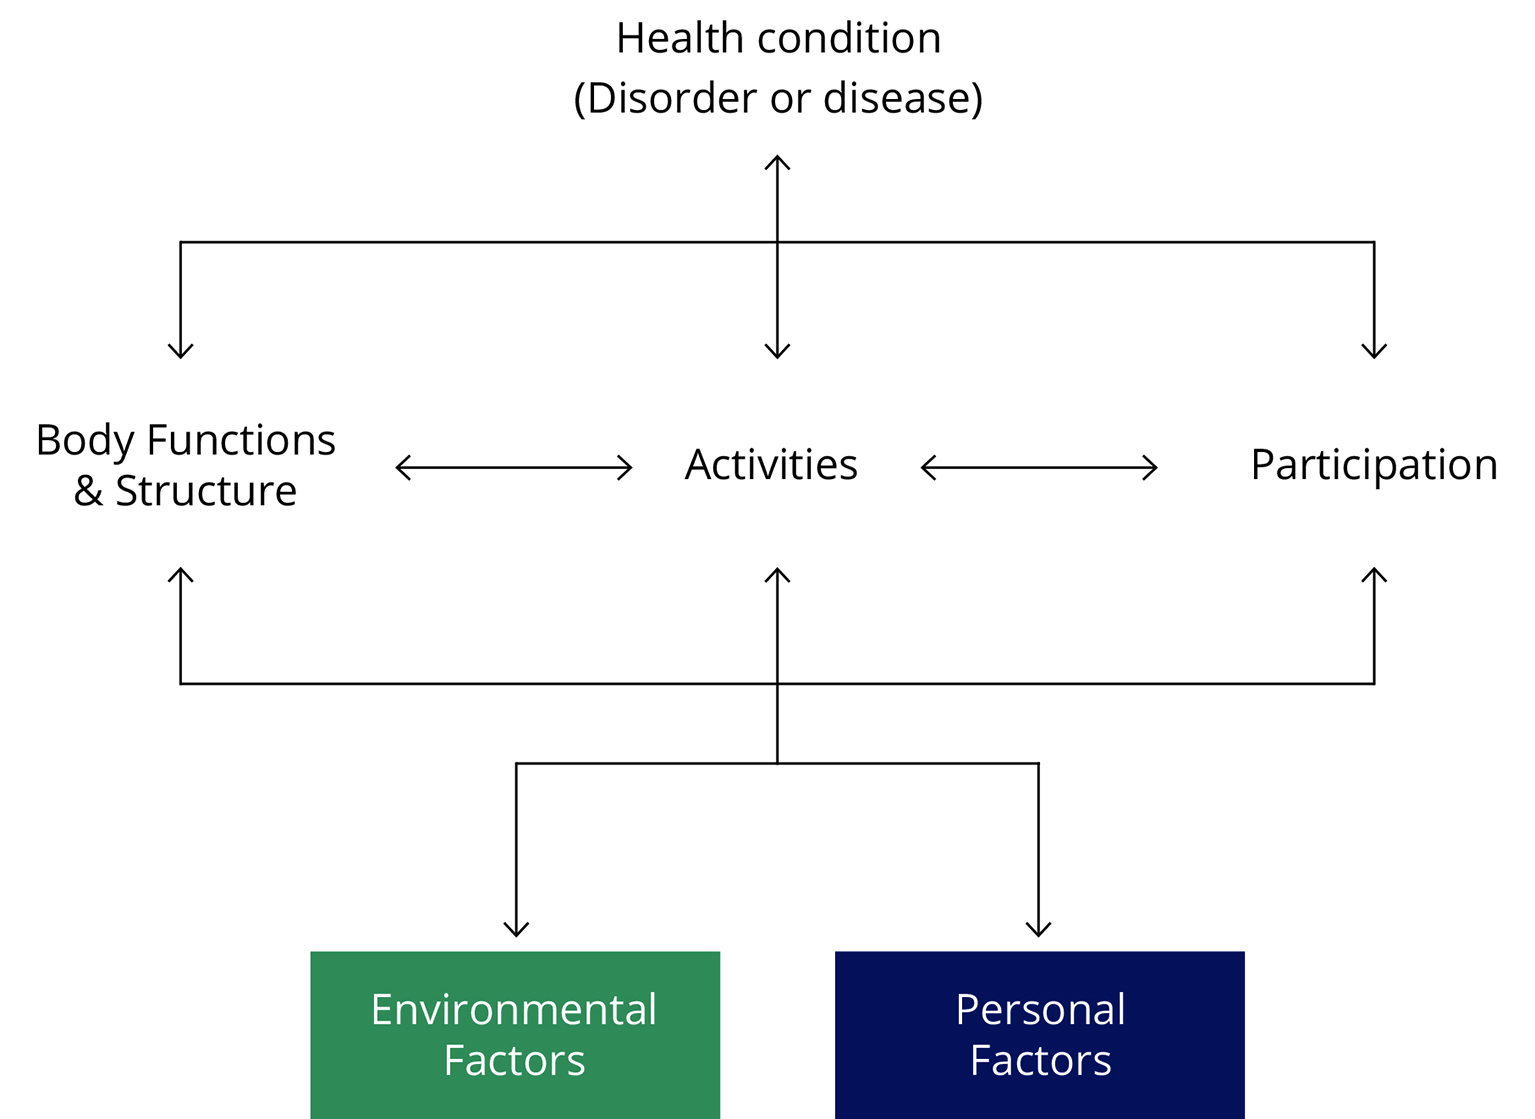 Diagram showing the inter-relationship between a person's body functions and structure, activity restrictions, and/or participation restrictions, and their health condition(s) and environmental and/or personal factors